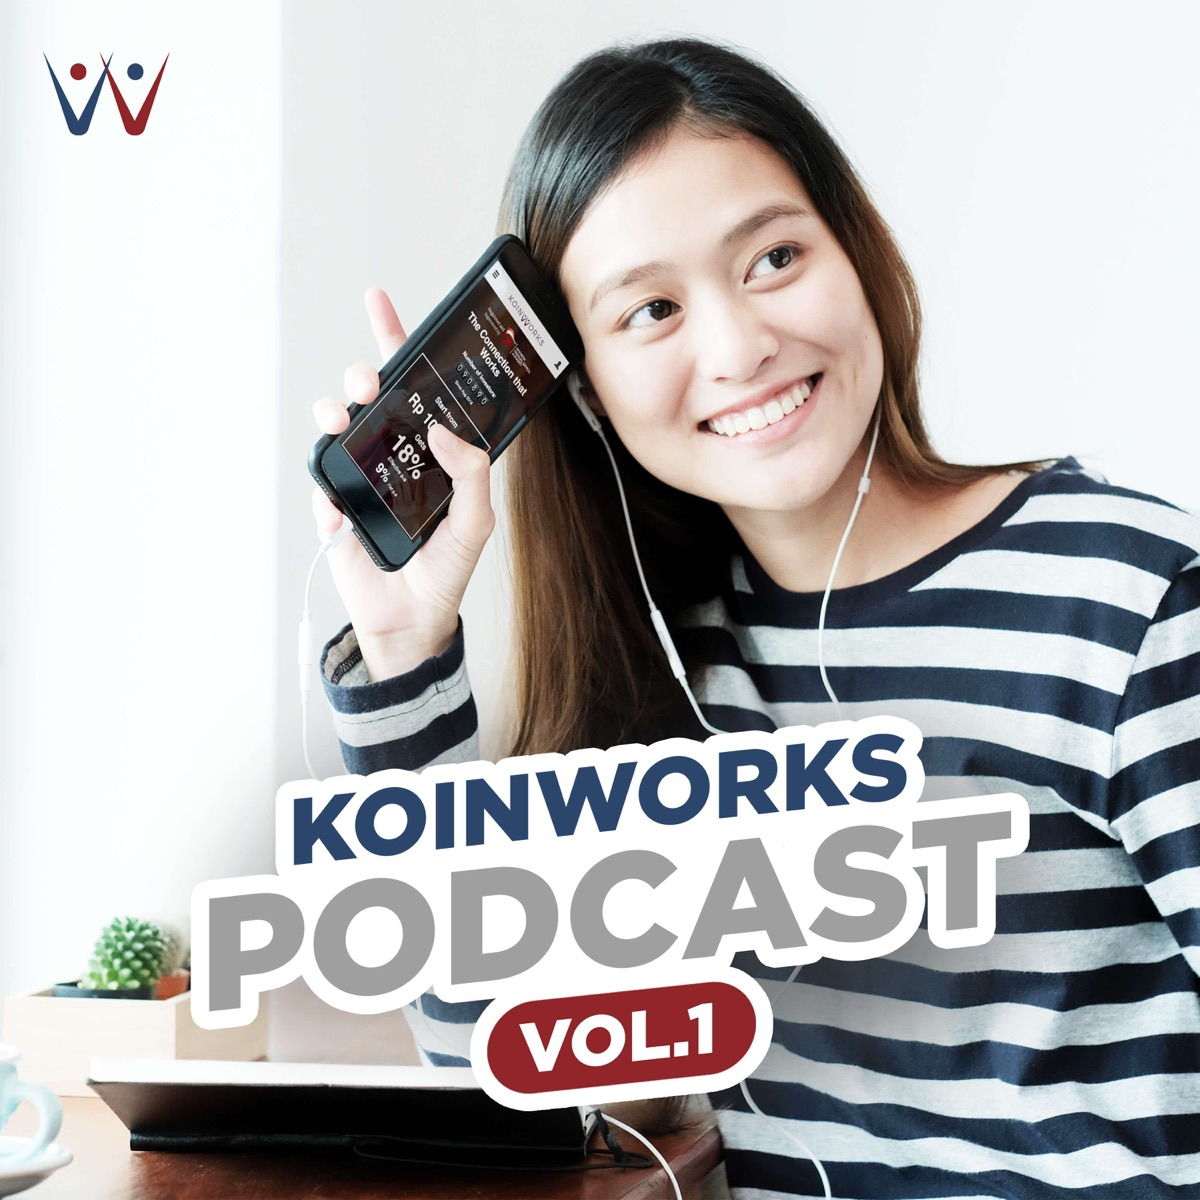 KoinWorks Podcasts